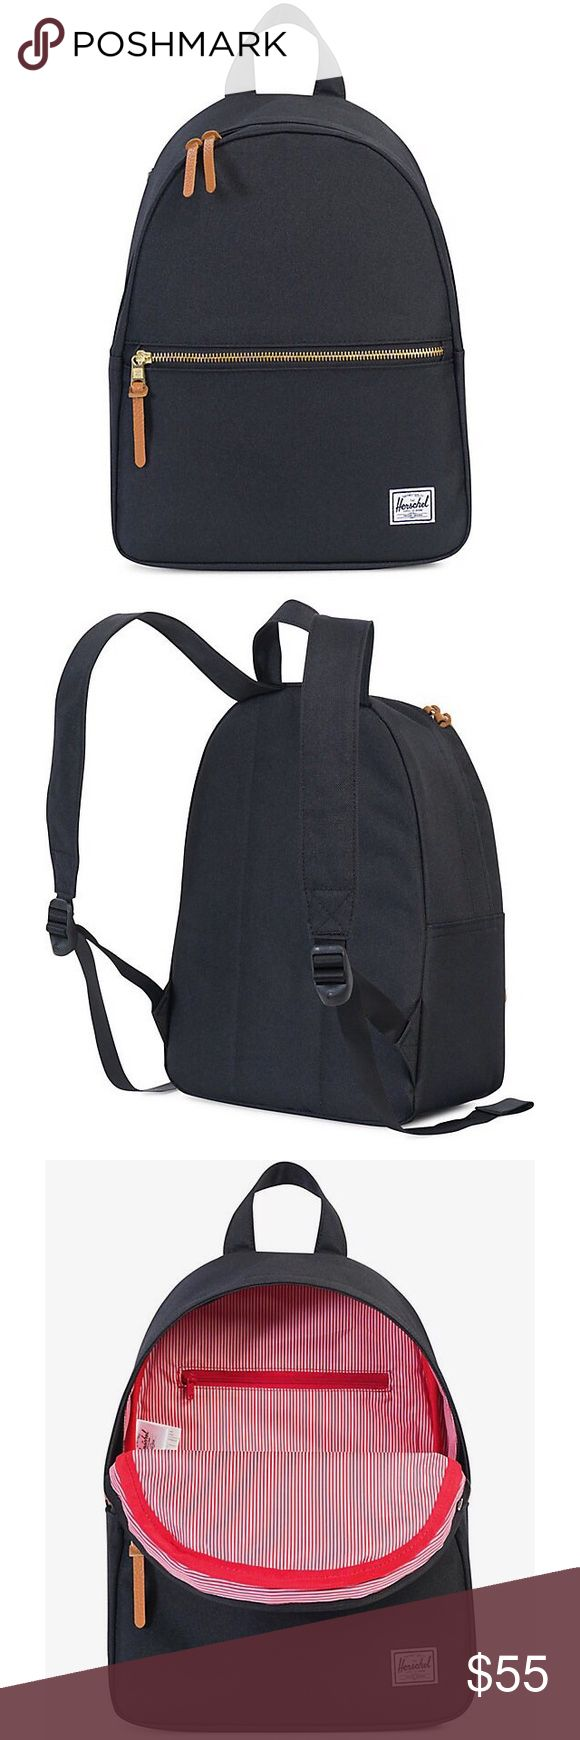 HERSCHEL SUPPLY  •  Town Mini Backpack Like new, used < 3 times. Price is firm. Bundle this with another item in my closet for only $47. Herschel Supply Company Bags Backpacks